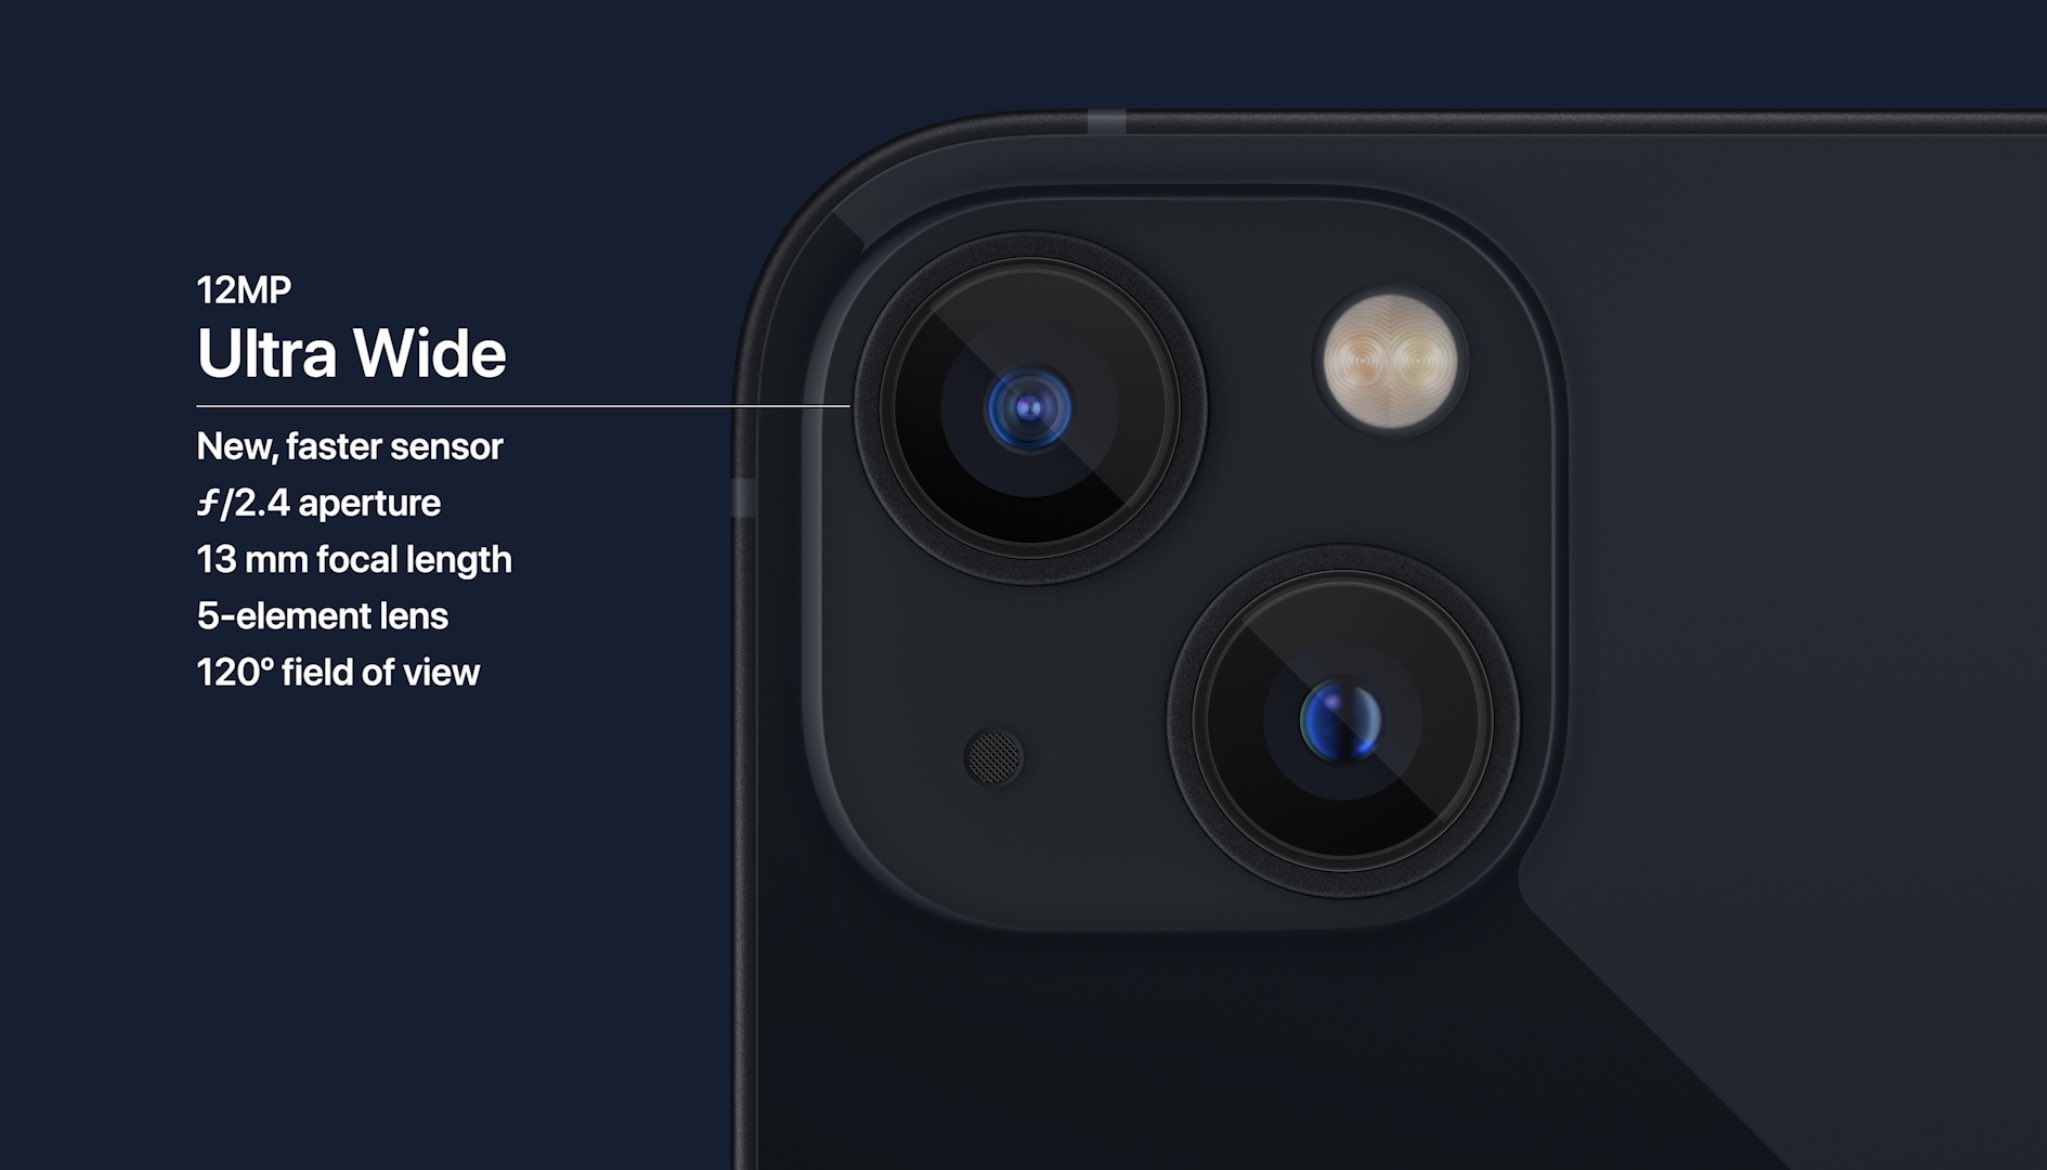 E Q39SuWEAMuGBq?format=jpg&name=large - Apple announces iPhone 13 with a smaller notch